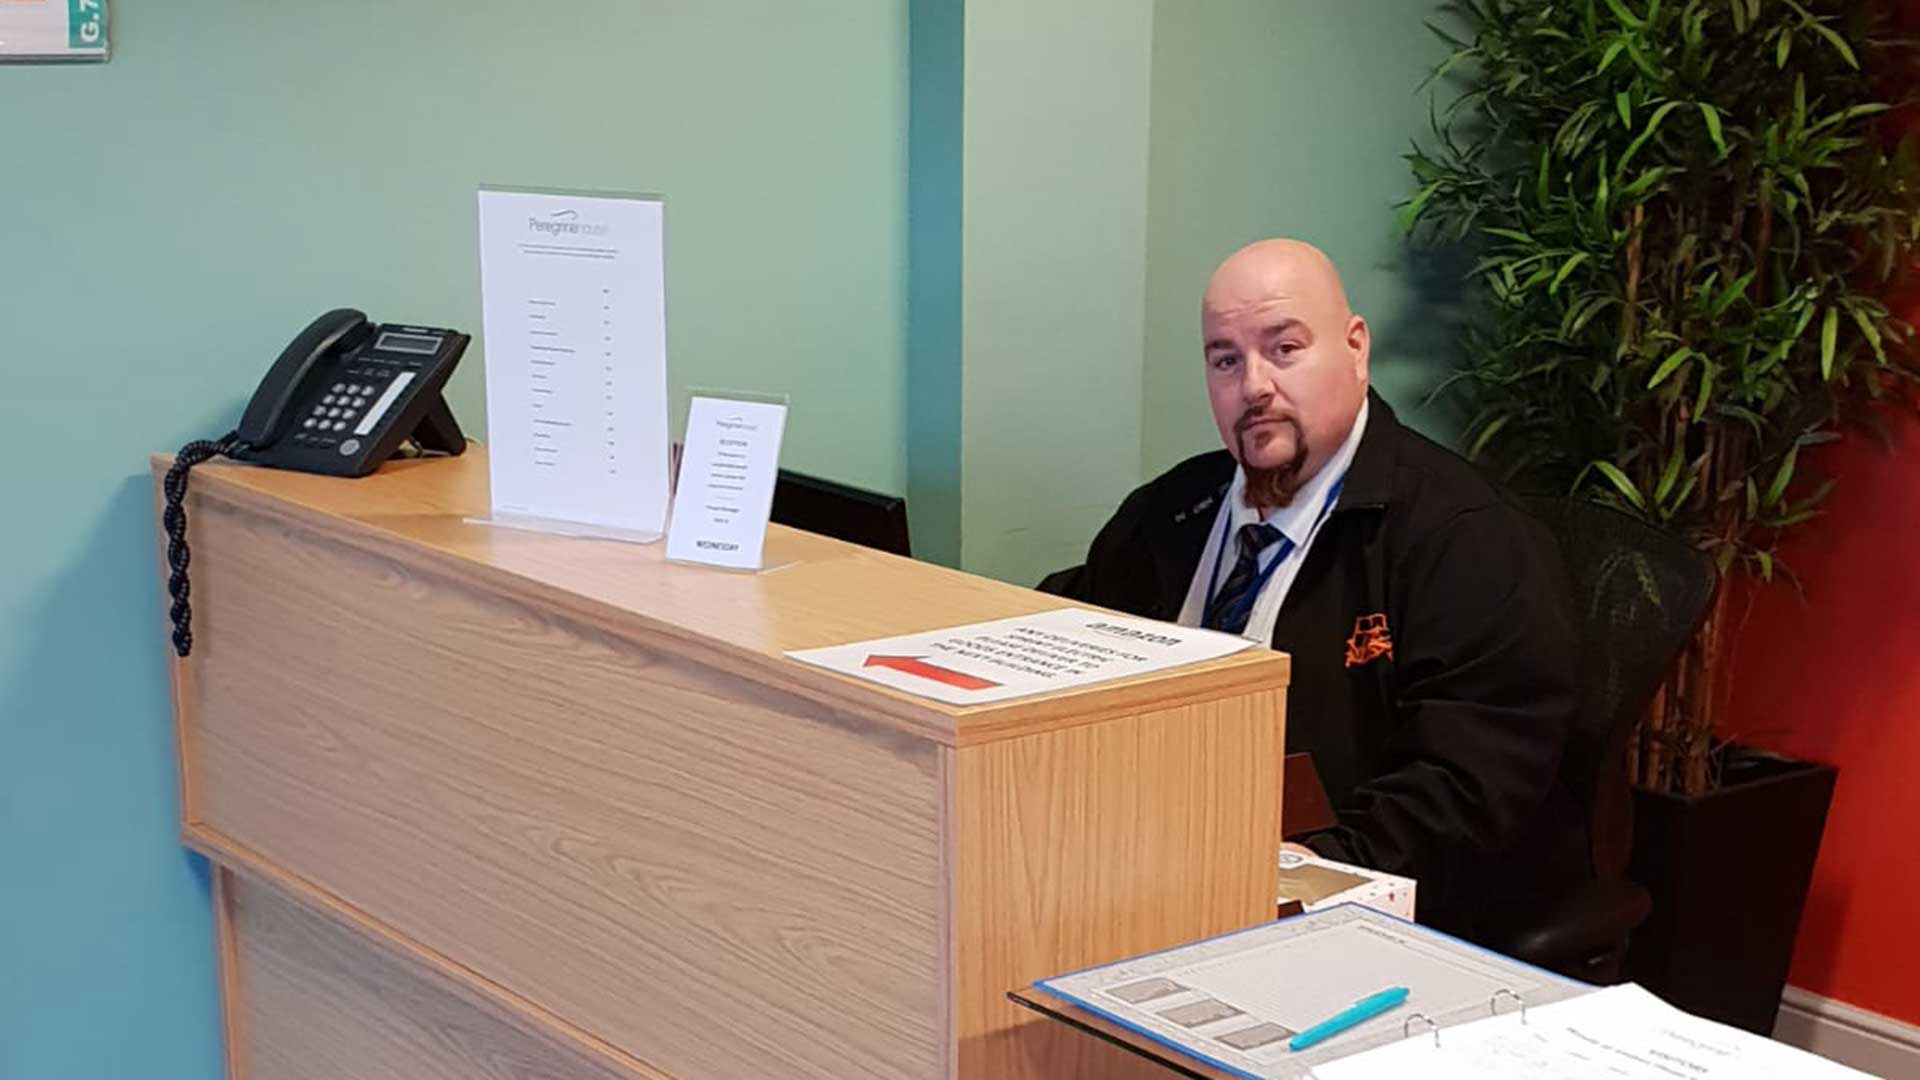 AP security guard manninng reception desk